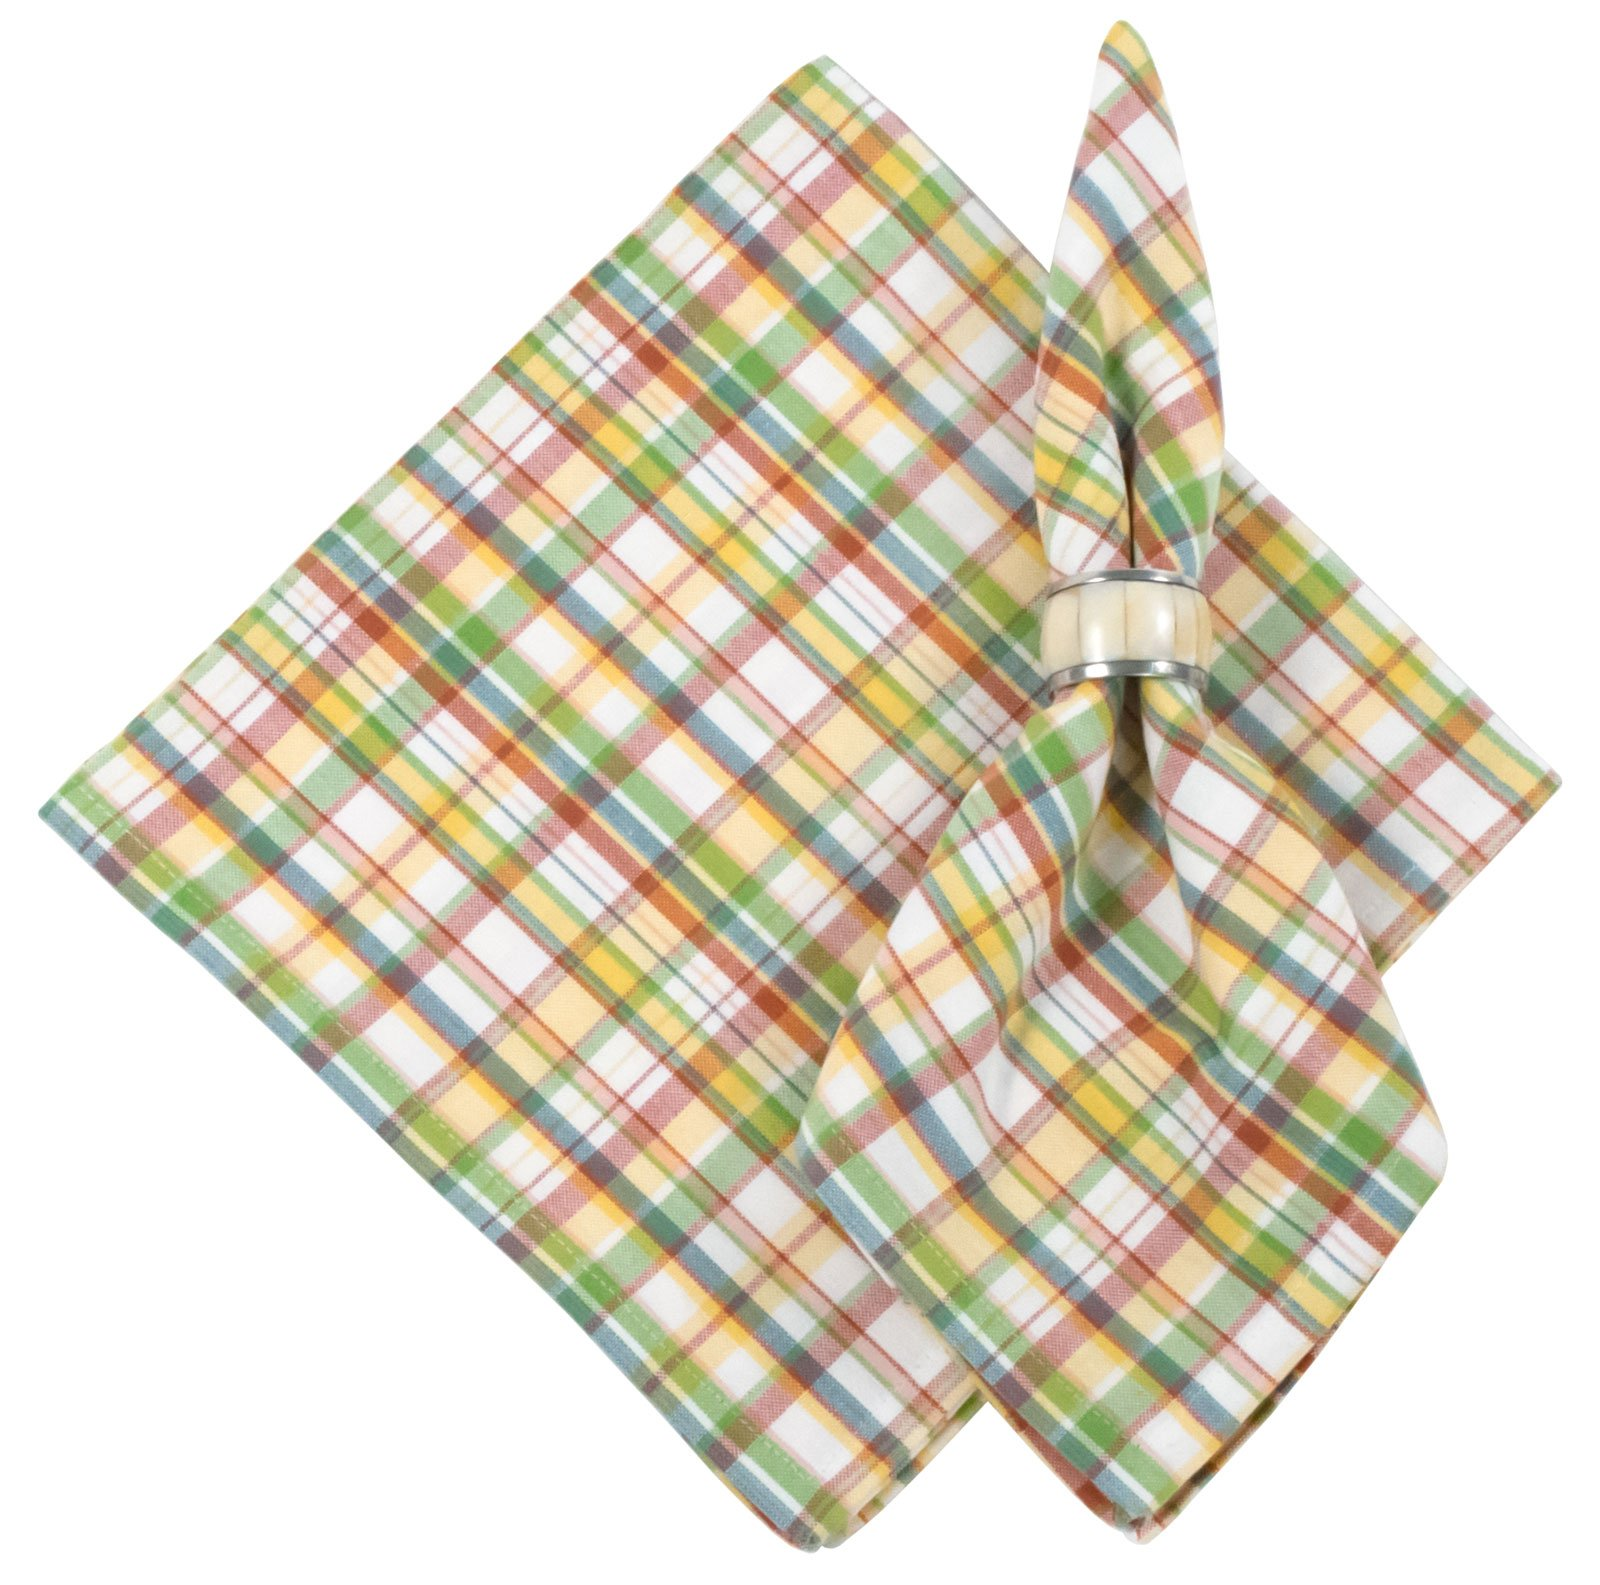 100% Cottom Coral Green & Yellow Plaid 22''x22'' Napkin, Set of 6 - Haystack